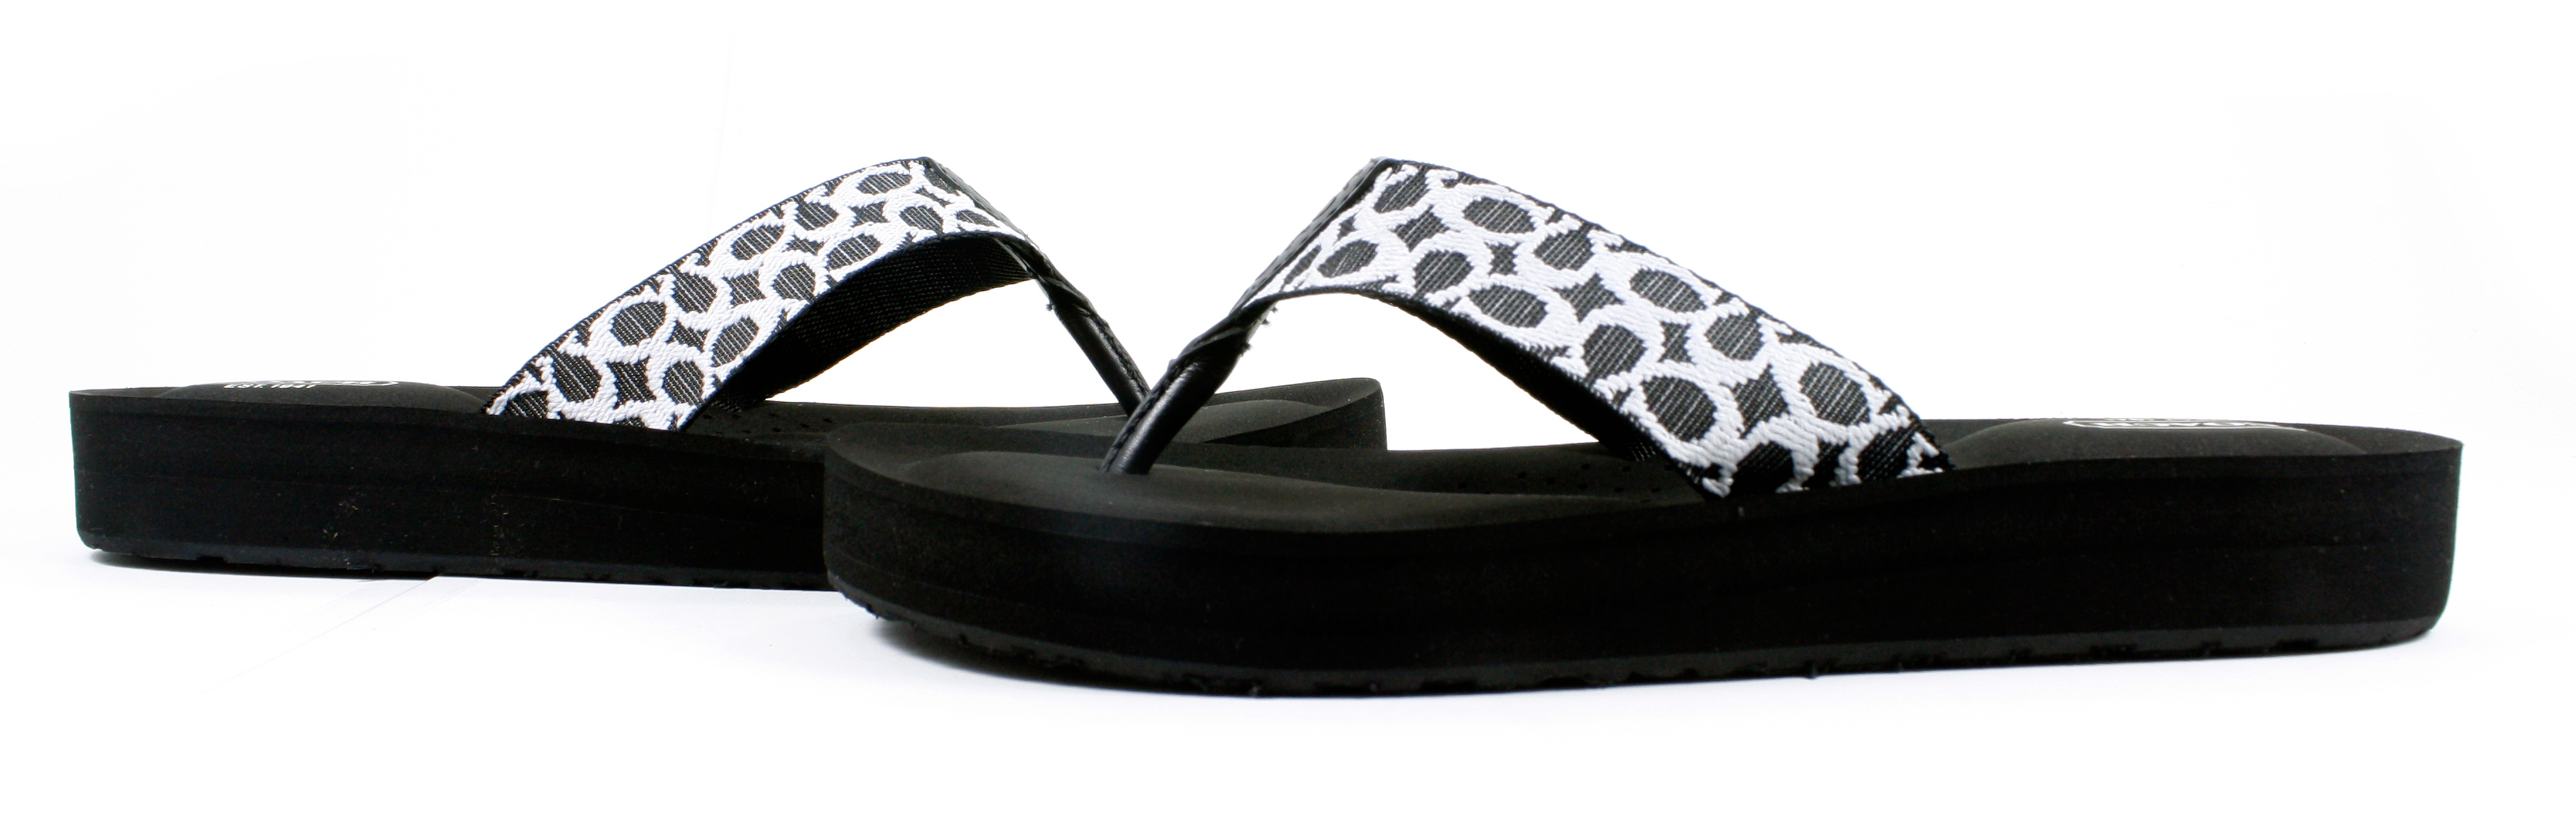 fd8e71c73 Coach Jessalyn Webbing Flip Flops Sandals Black Ivory Shoes 10 New ...